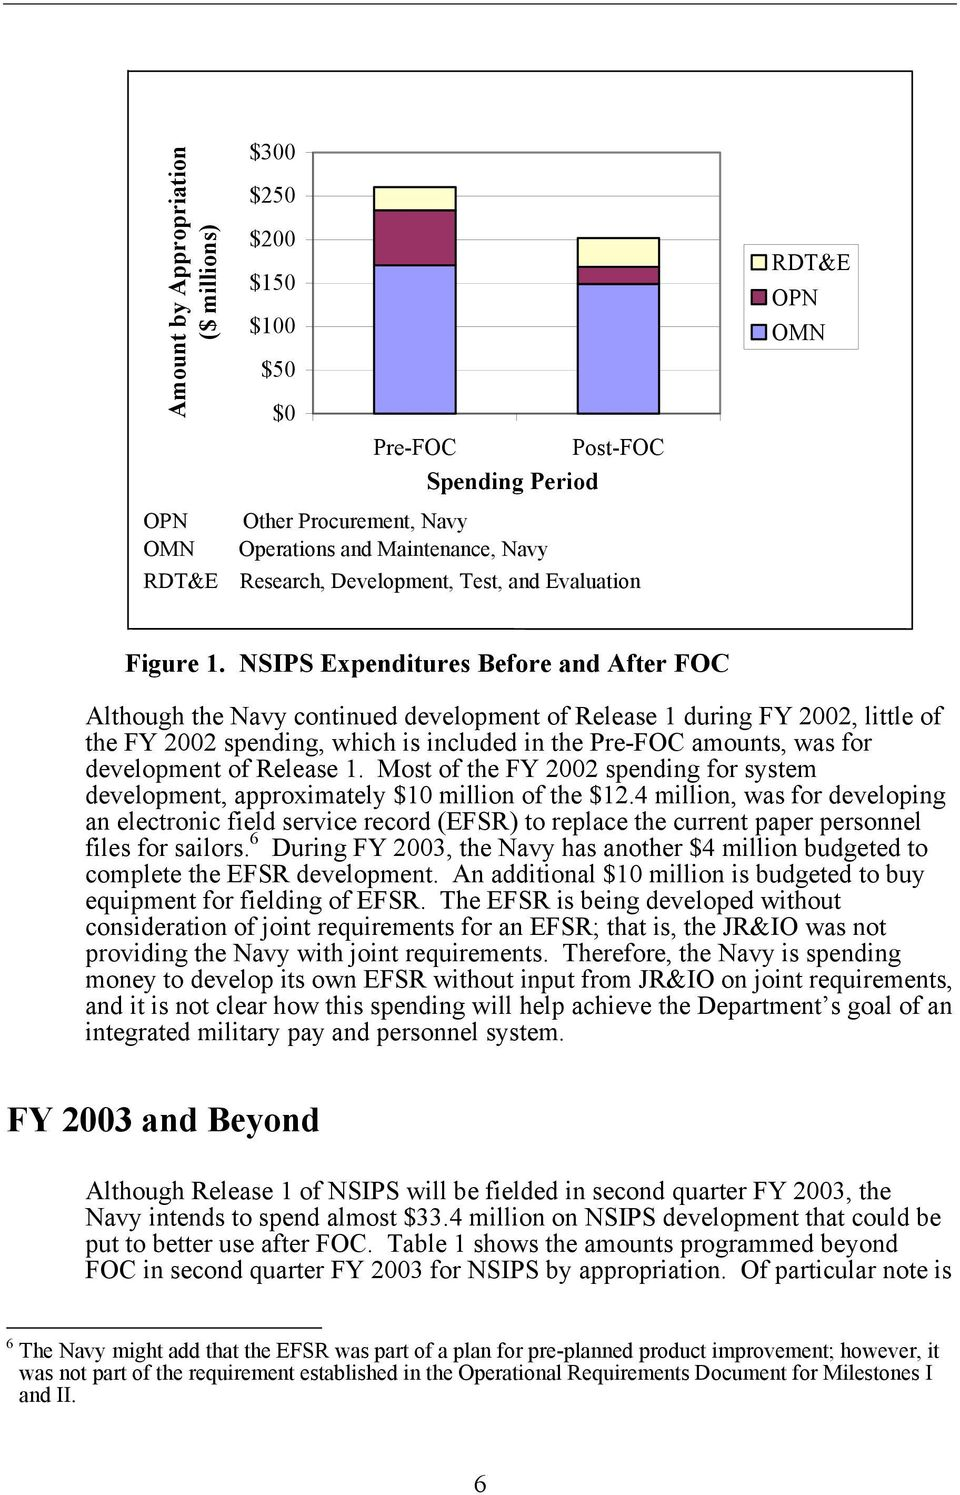 NSIPS Expenditures Before and After FOC Although the Navy continued development of Release 1 during FY 2002, little of the FY 2002 spending, which is included in the Pre-FOC amounts, was for